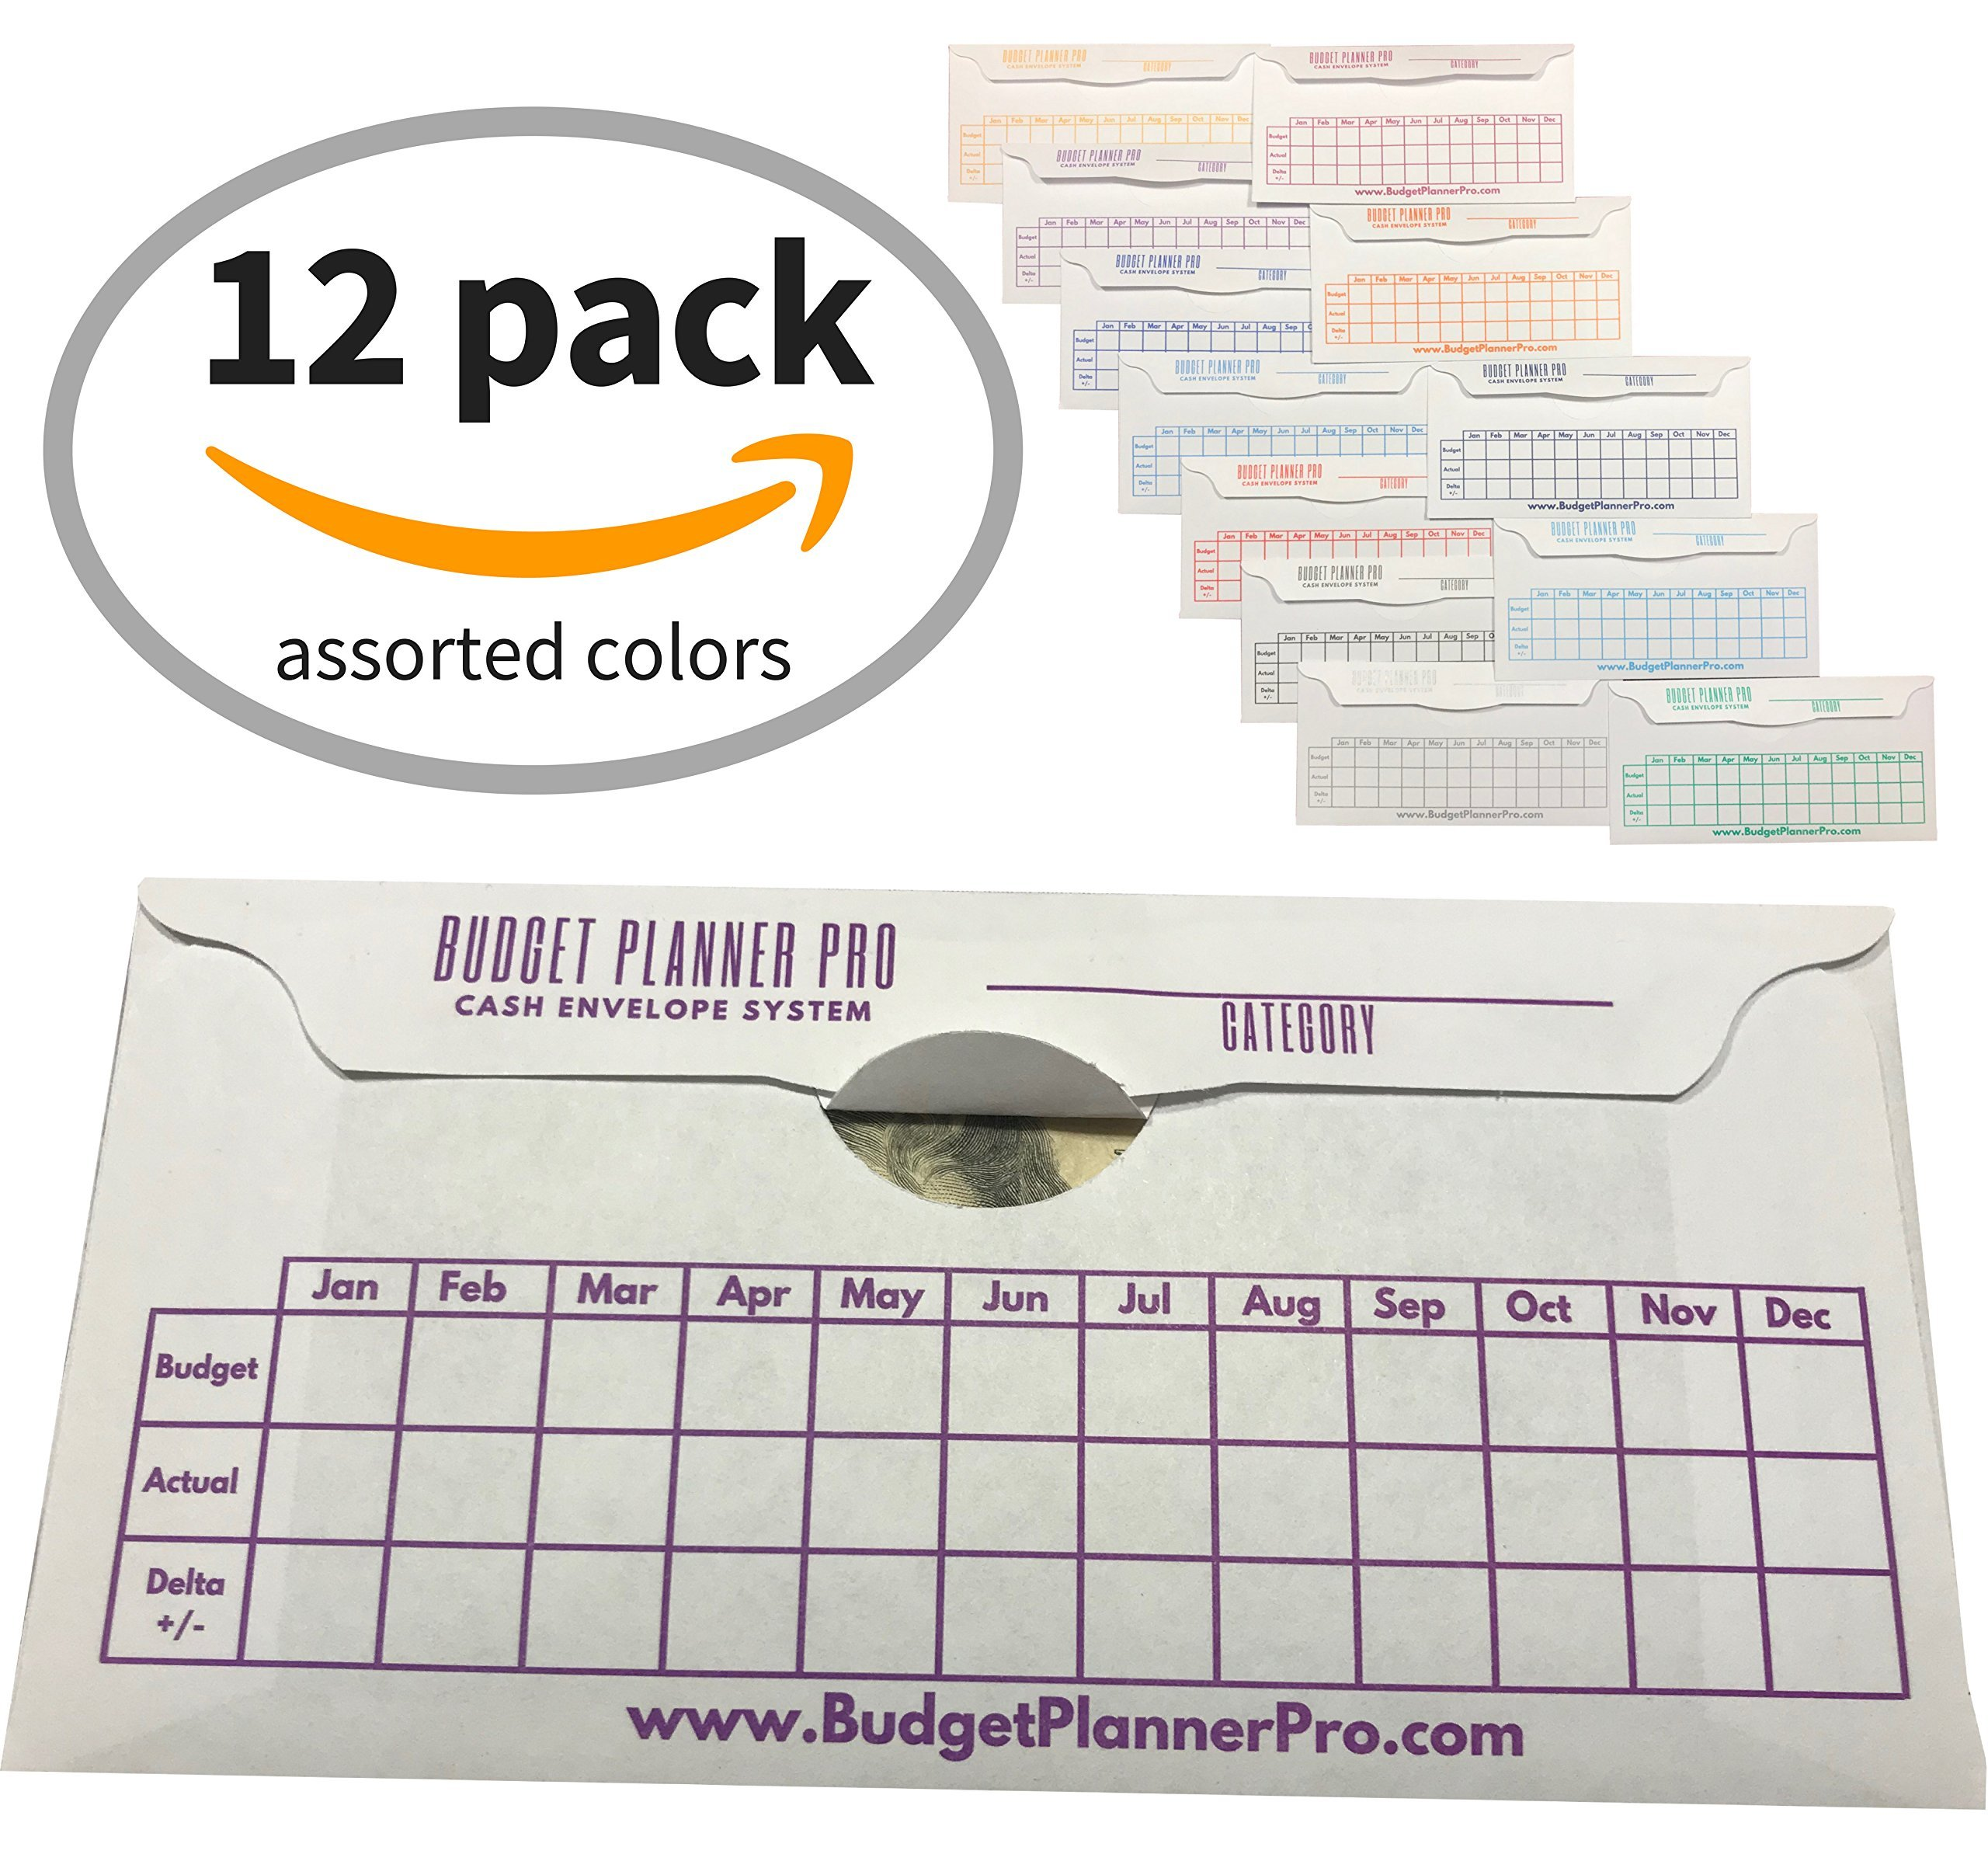 Cash Envelope System Budget Planner Wallet Organizer for Budgeting, Saving Money and Debt Relief, Durable with a Quick and Easy Open and Close Flap (12 Pack Assorted Colors)